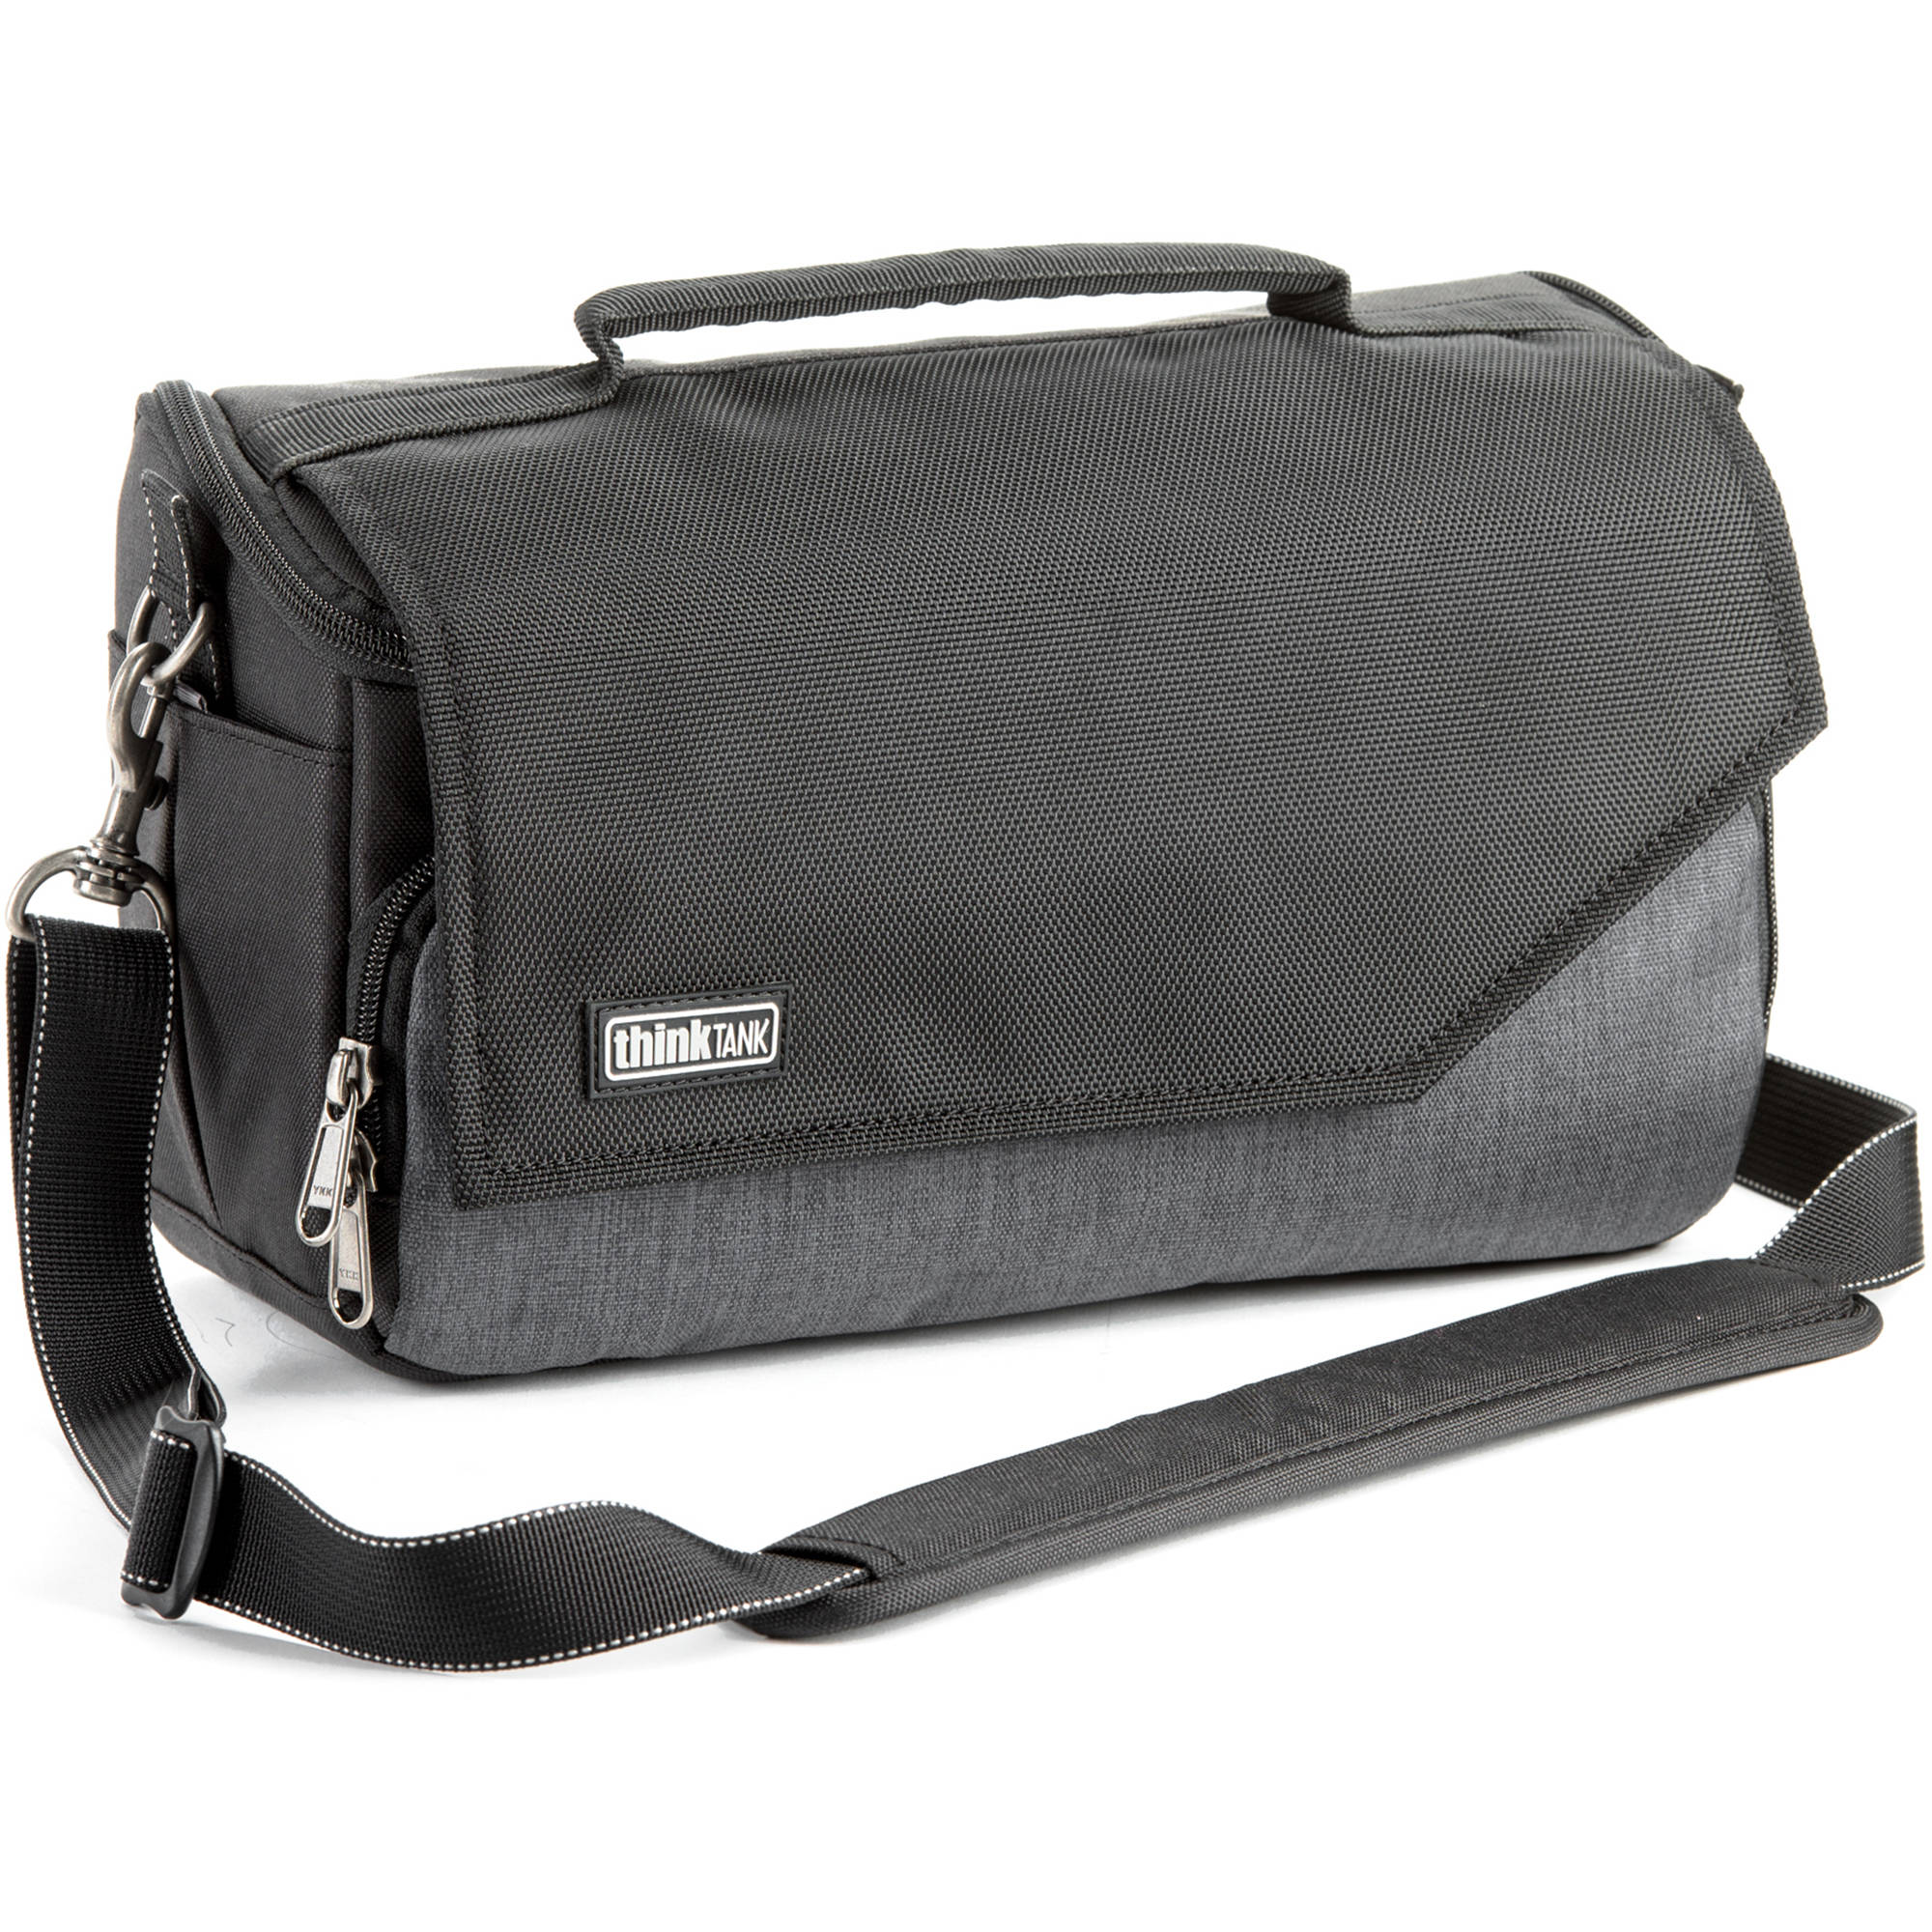 Think Tank Photo Mirrorless Mover 25i Camera Bag Pewter